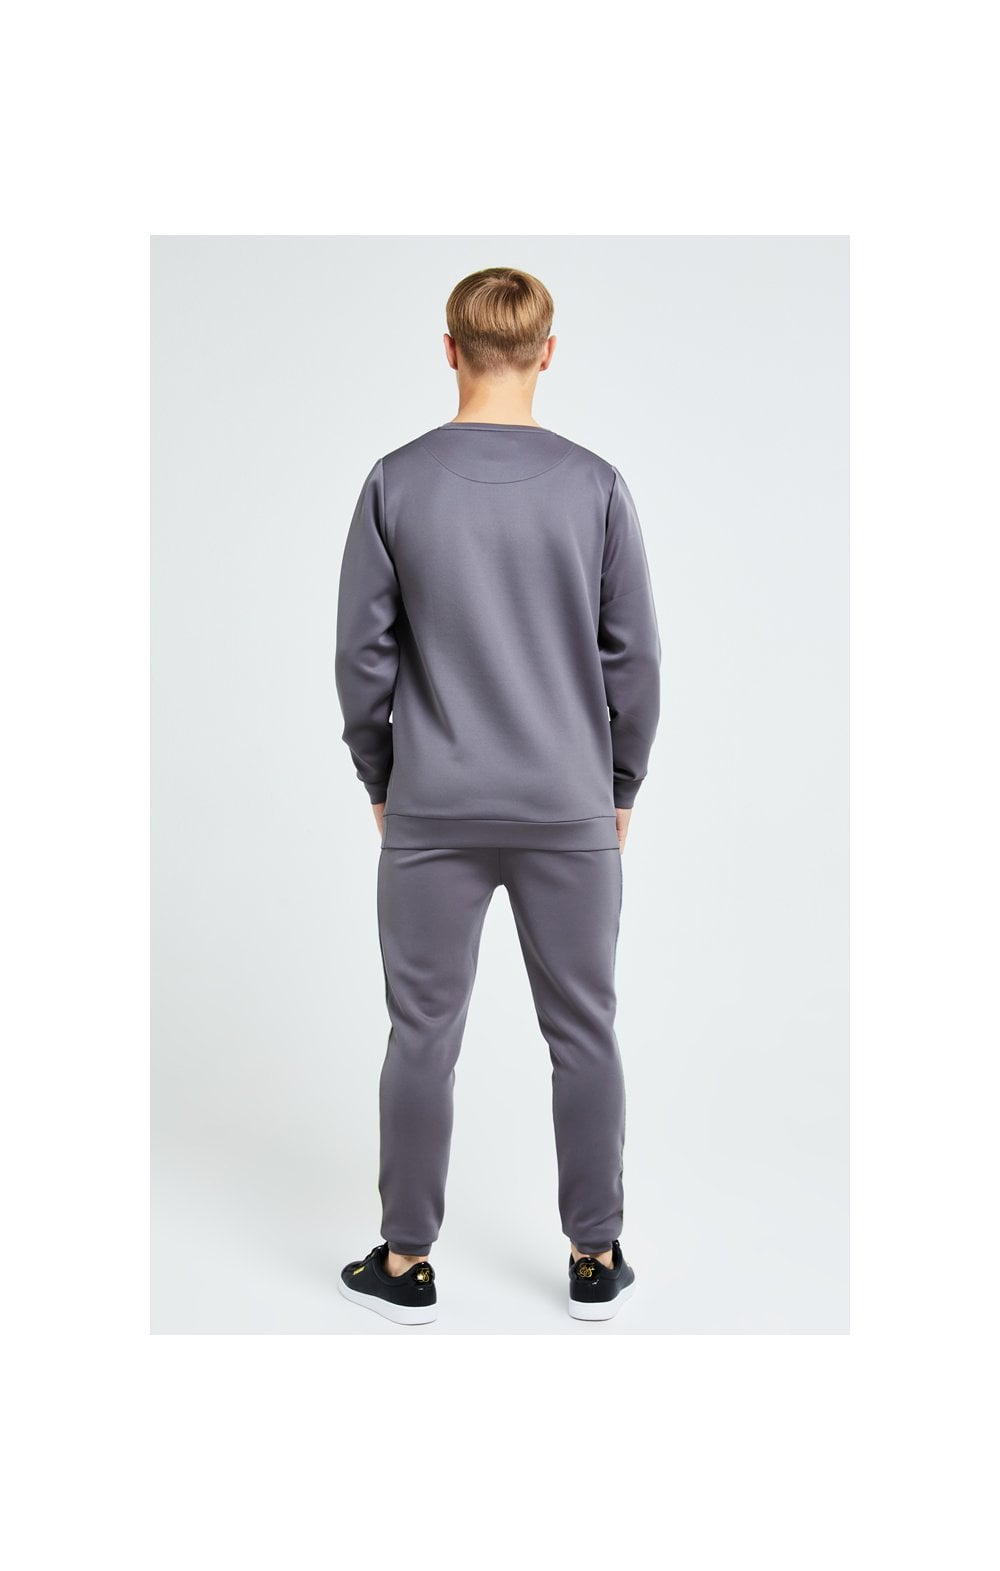 Load image into Gallery viewer, Illusive London Blaze Crew Sweater - Dark Grey & Lime (4)